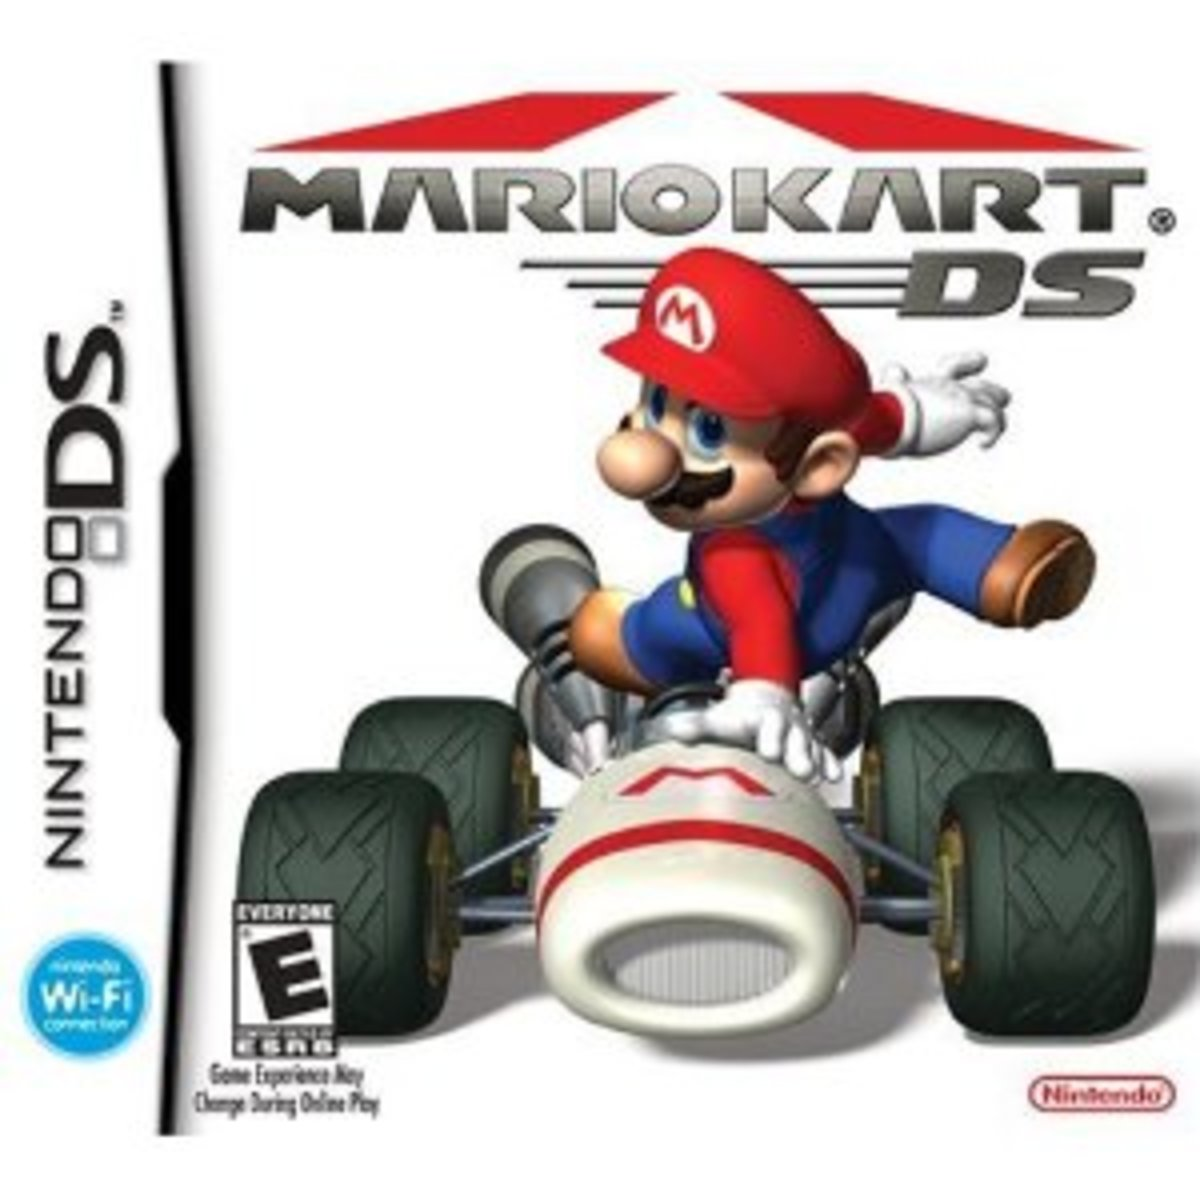 One of the Best DSi Games, Mario Kart DS.